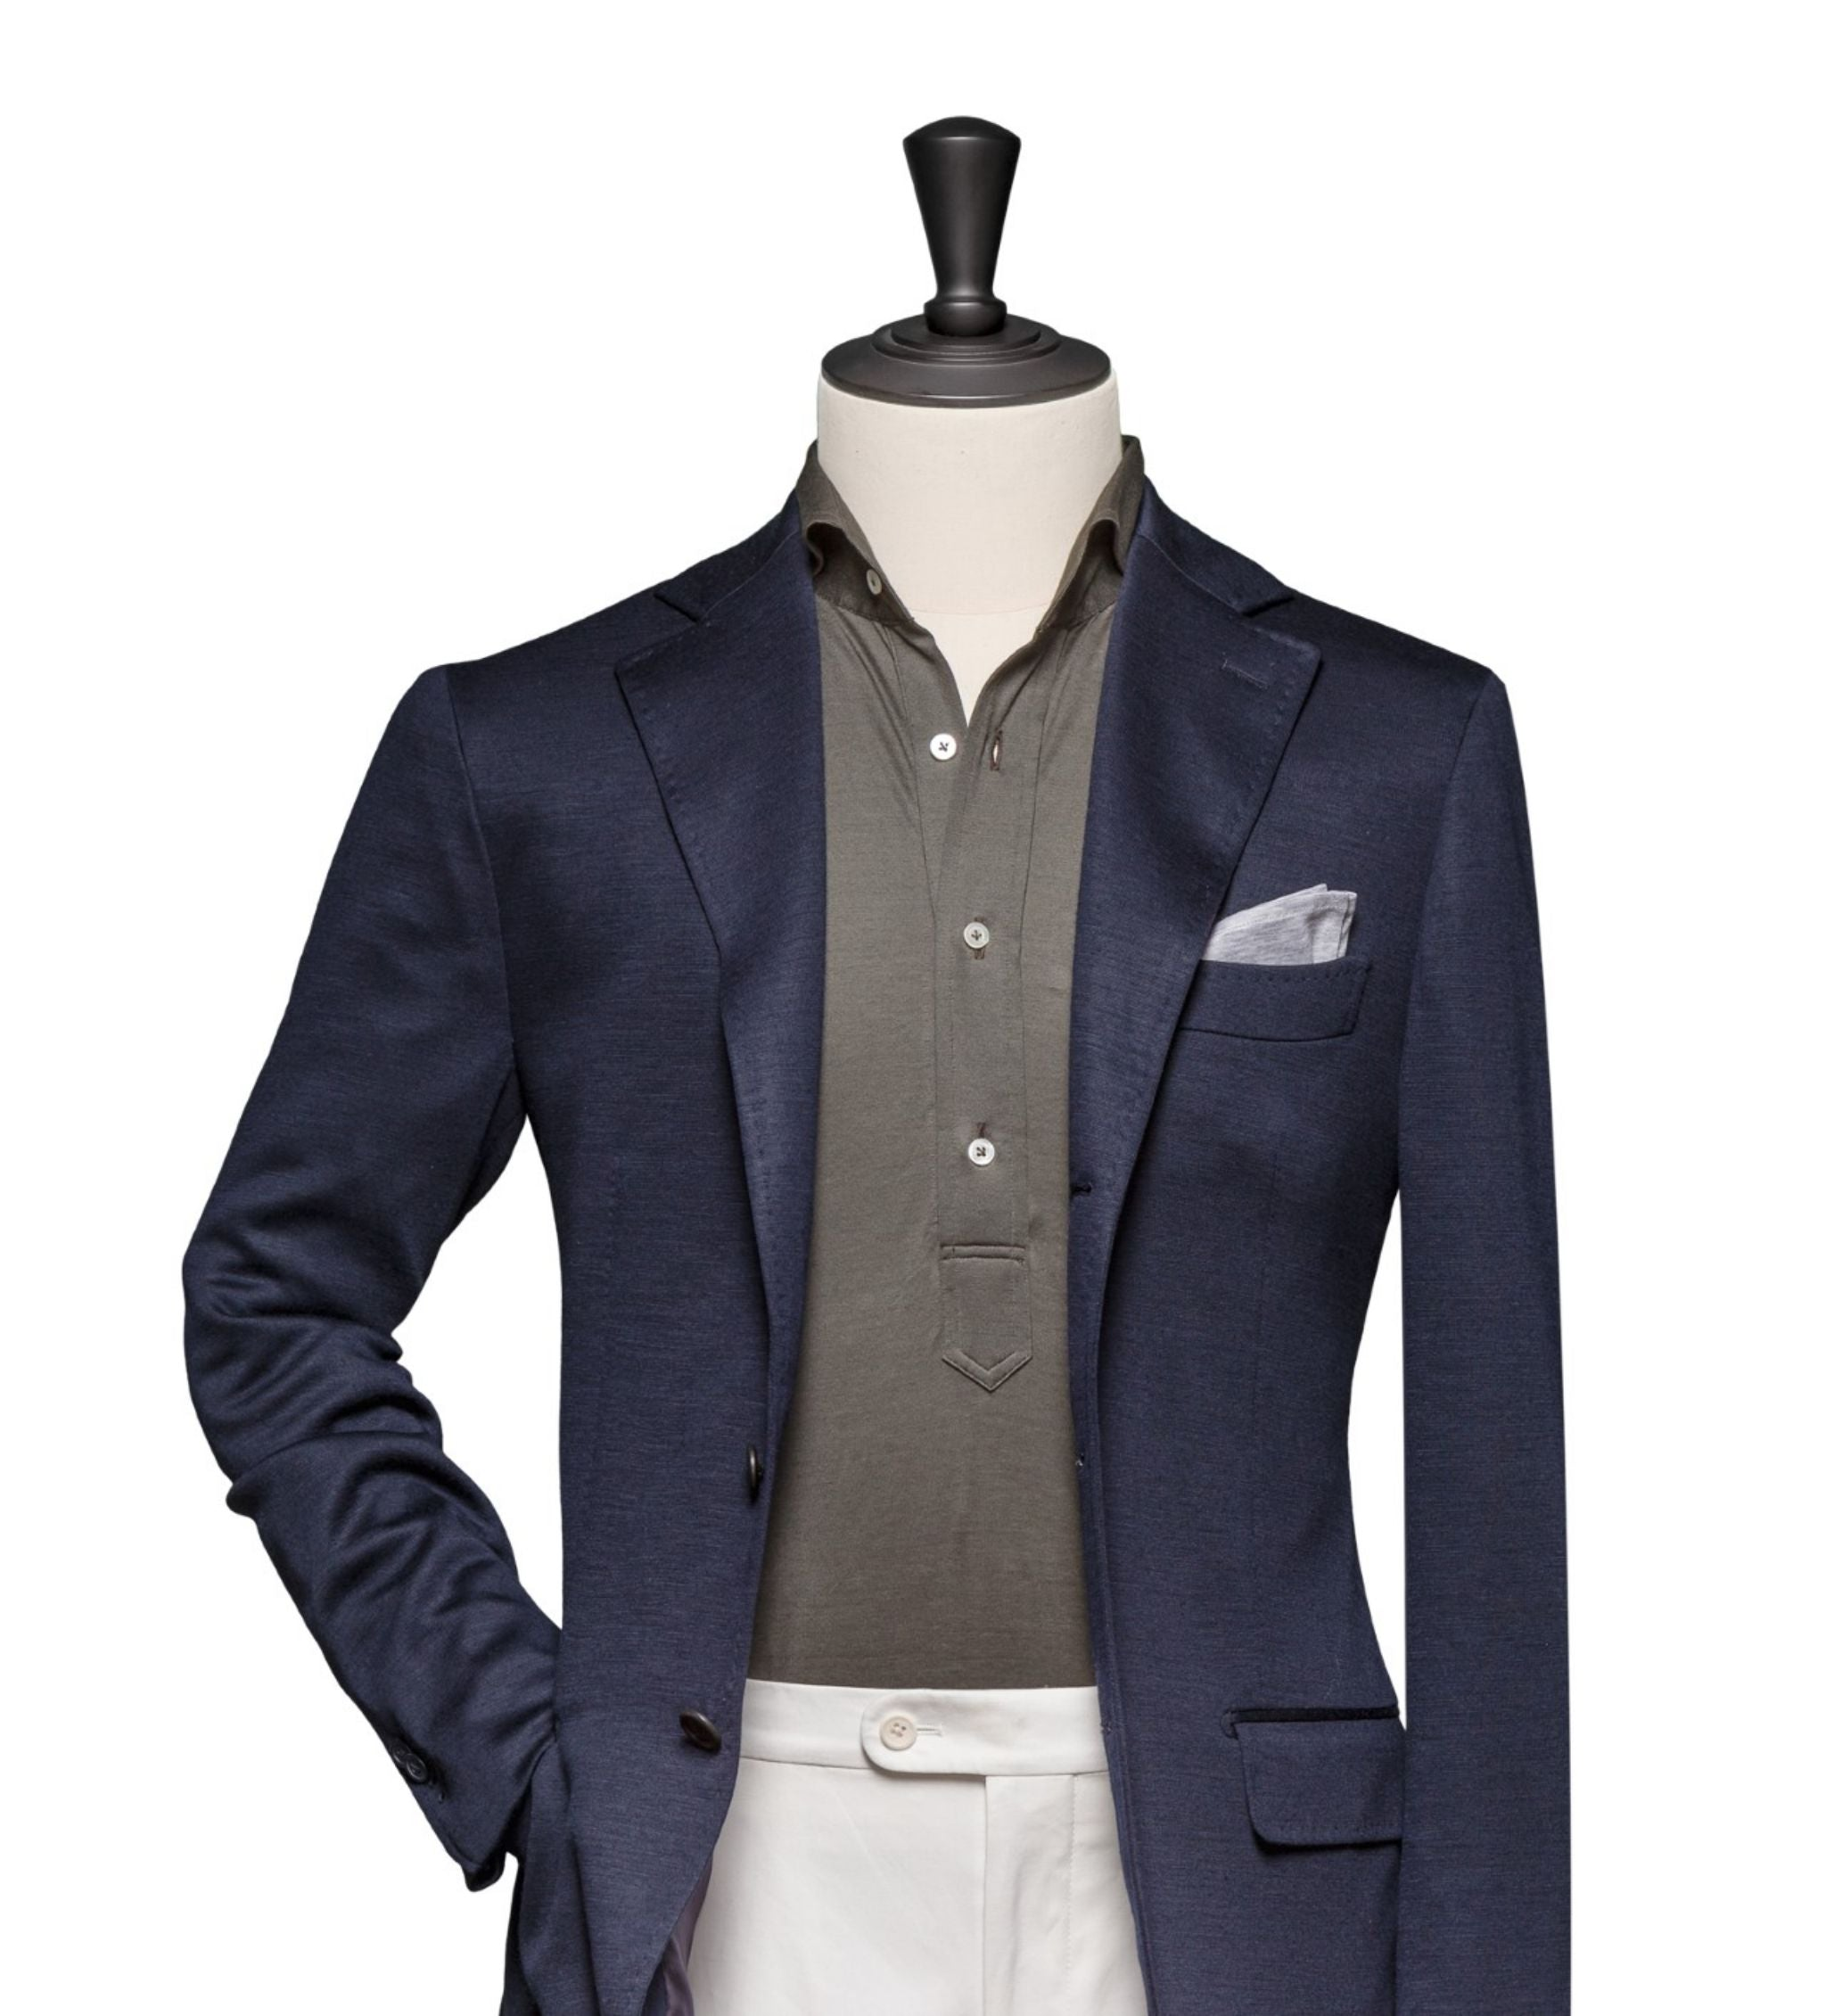 How to combine suits and sport coats - Navy blue wool blazer with cotton slacks